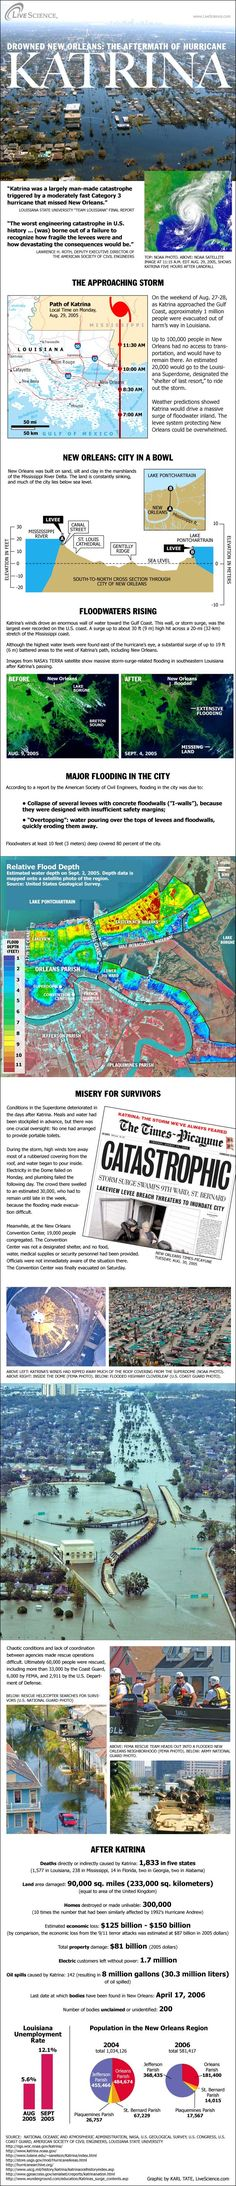 Facts about the aftermath of Hurricane Katrina and the effect on New Orleans on the anniversary of the disastrous storm.